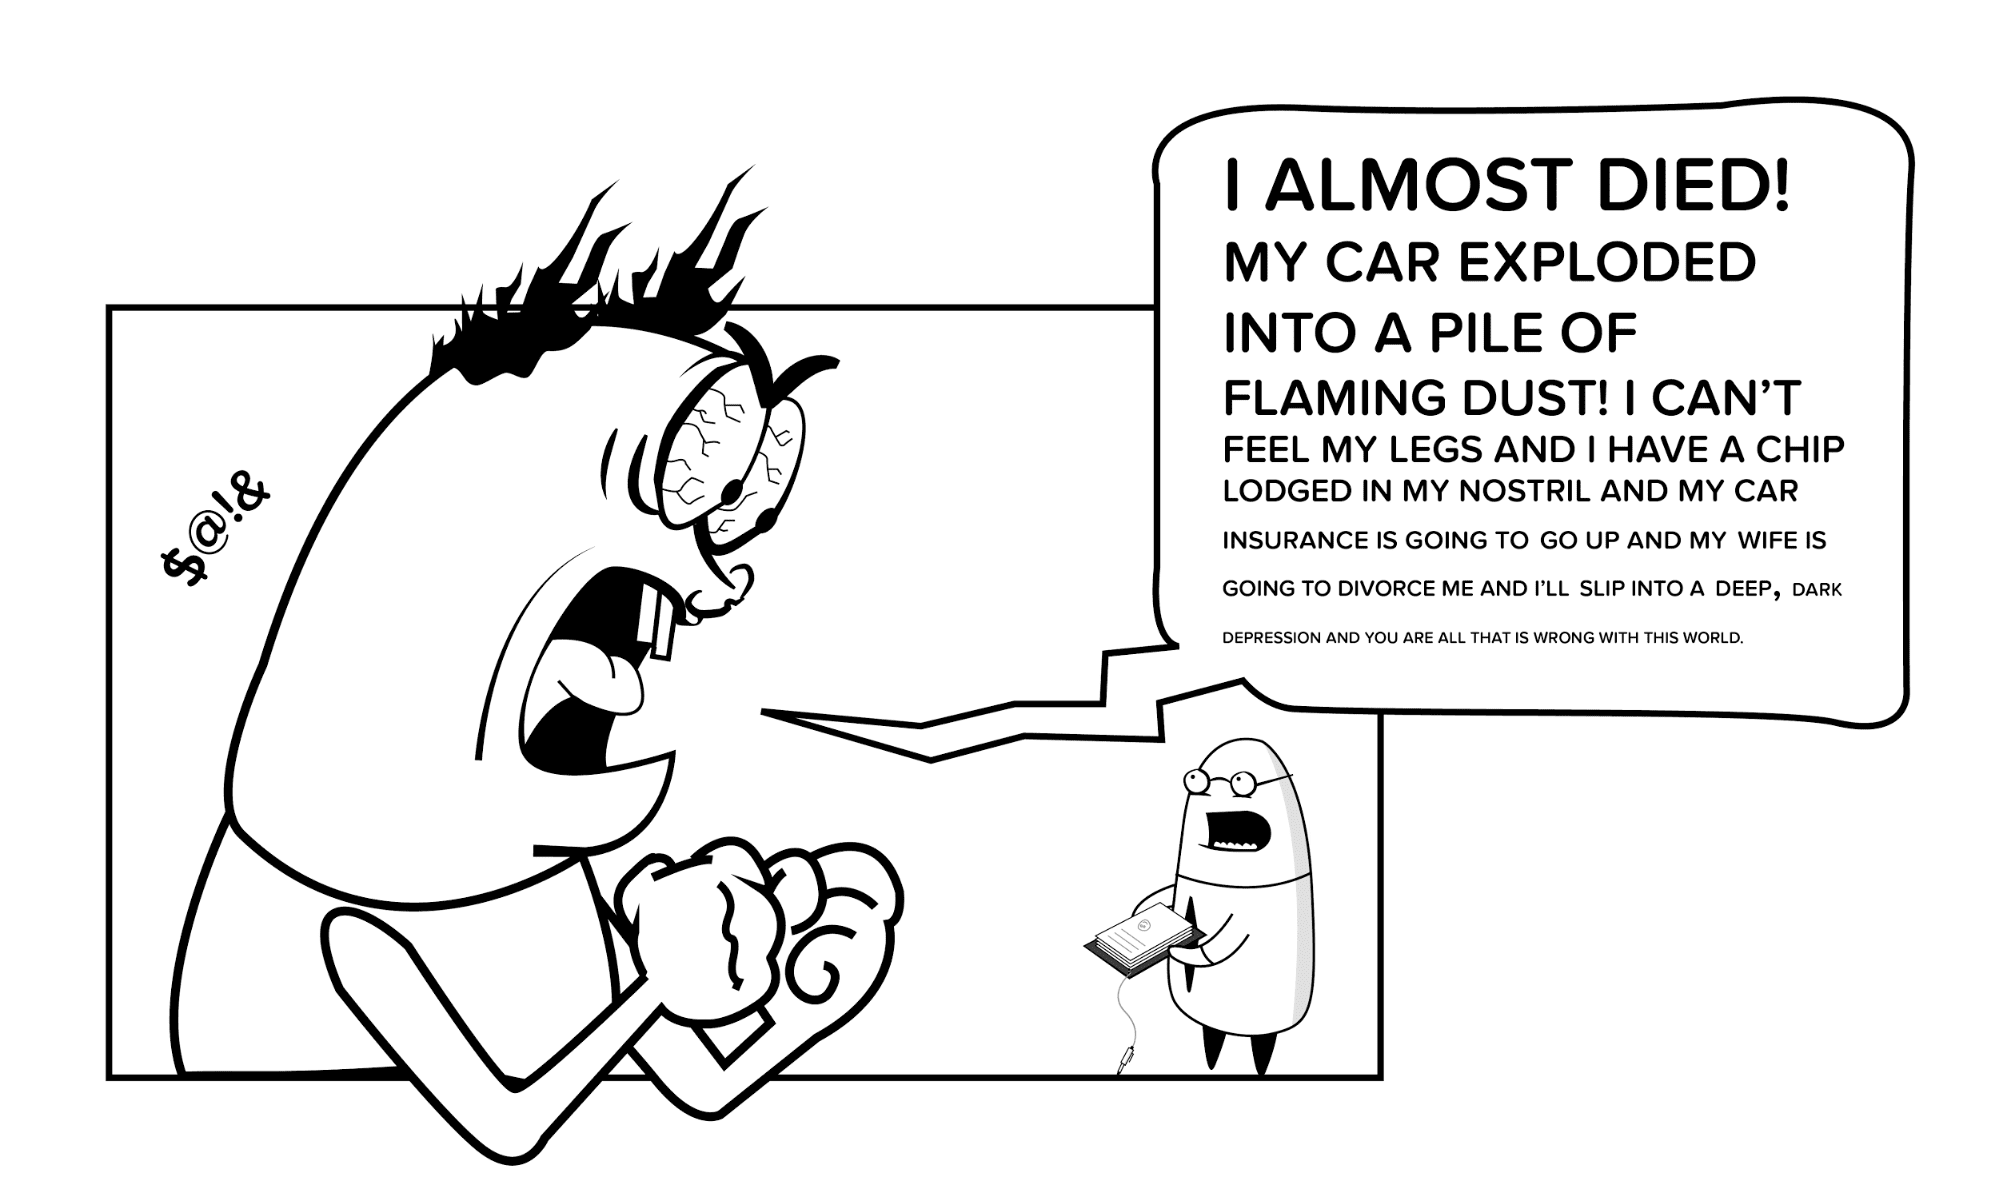 UX Comic illustrating why qualitative data is important - cell 11